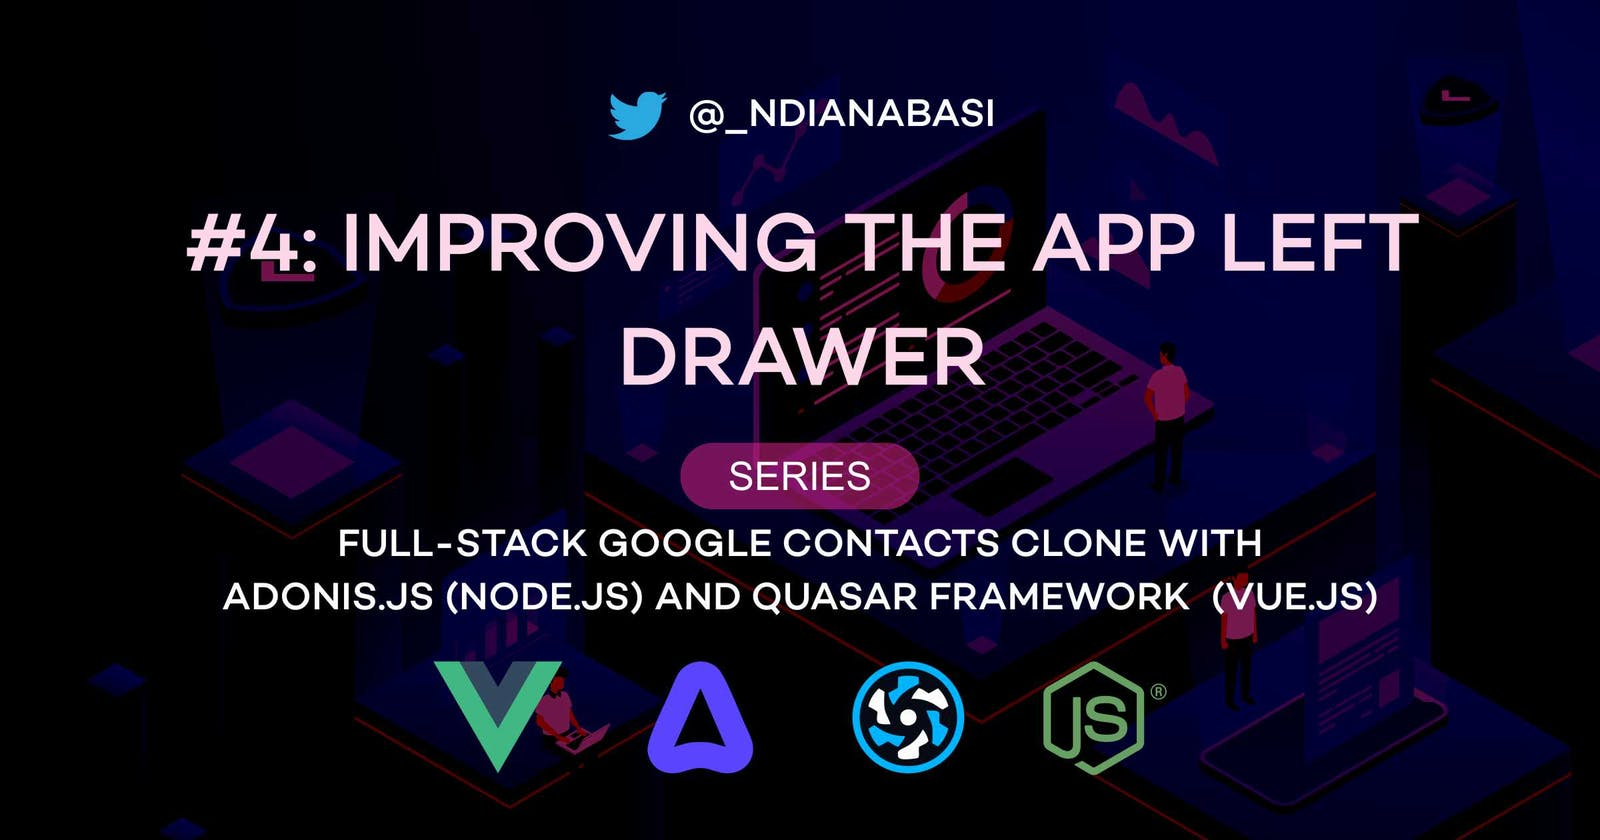 The Left Drawer | Full-Stack Google Contacts Clone with Adonis.js/Node.js and Quasar (Vue.js)